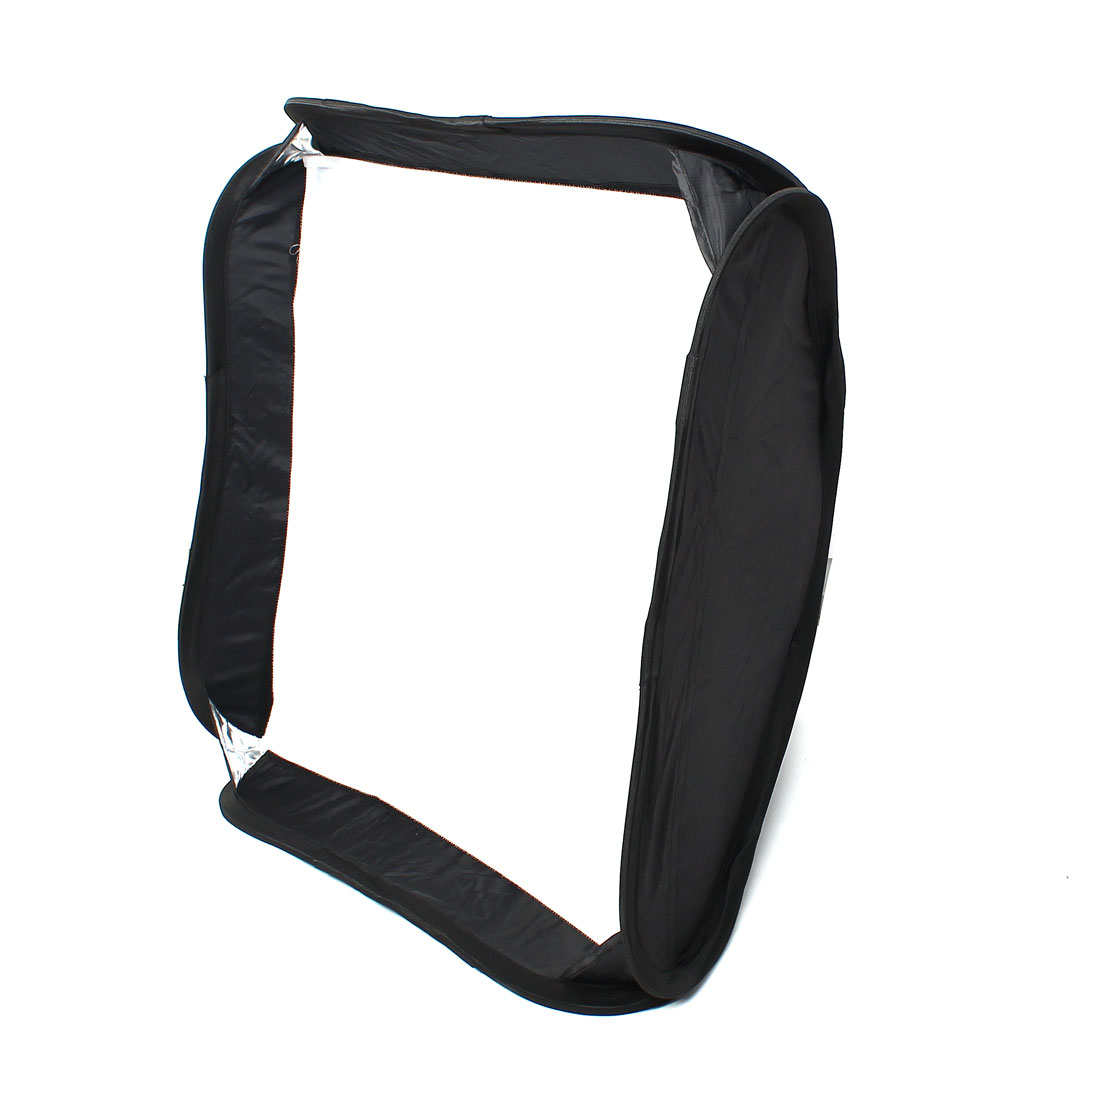 Black/Silver 60x60cm Umbrella Reflective Square Softbox for Flash Light